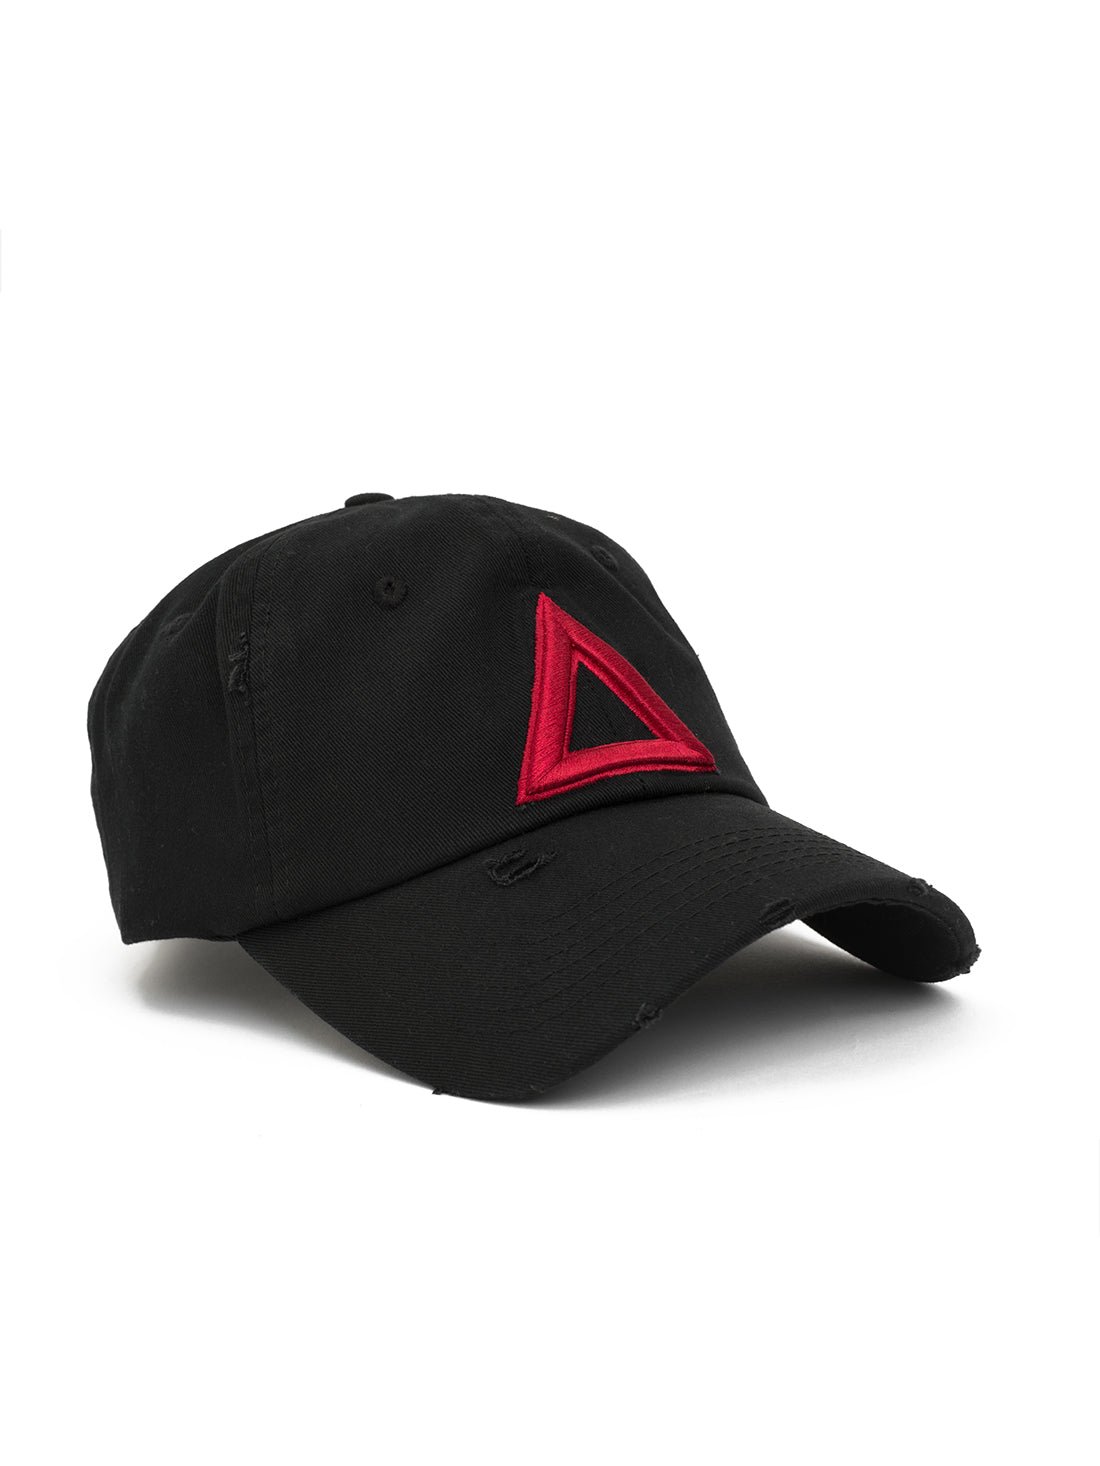 DISTRESS DAD HAT BLACK - Red TRI - Triangulo Swag